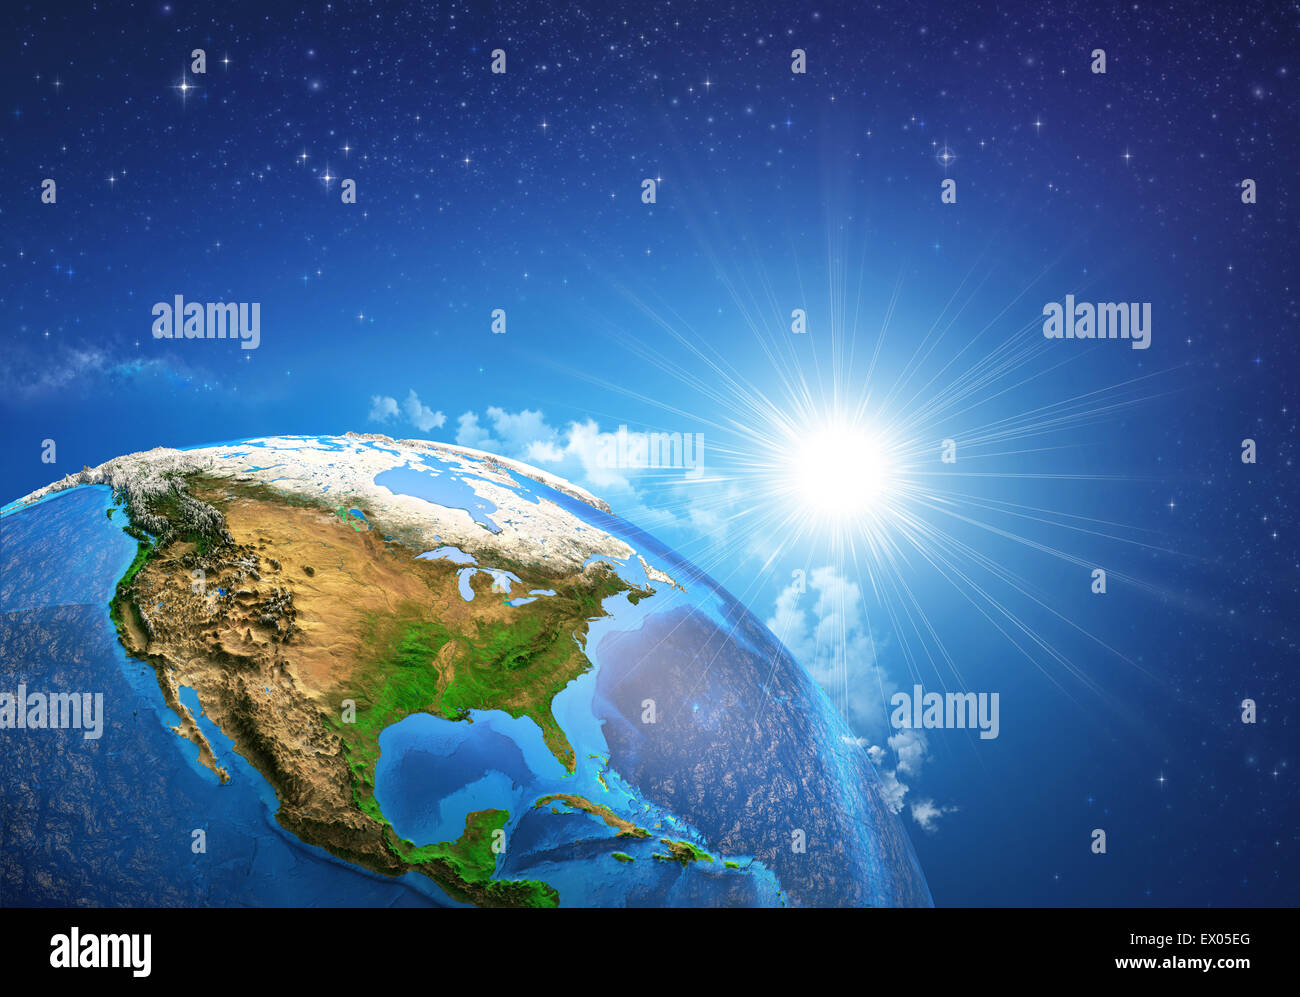 Rising sun over the Earth and its landforms, view of the United States of America. Elements of this image furnished - Stock Image